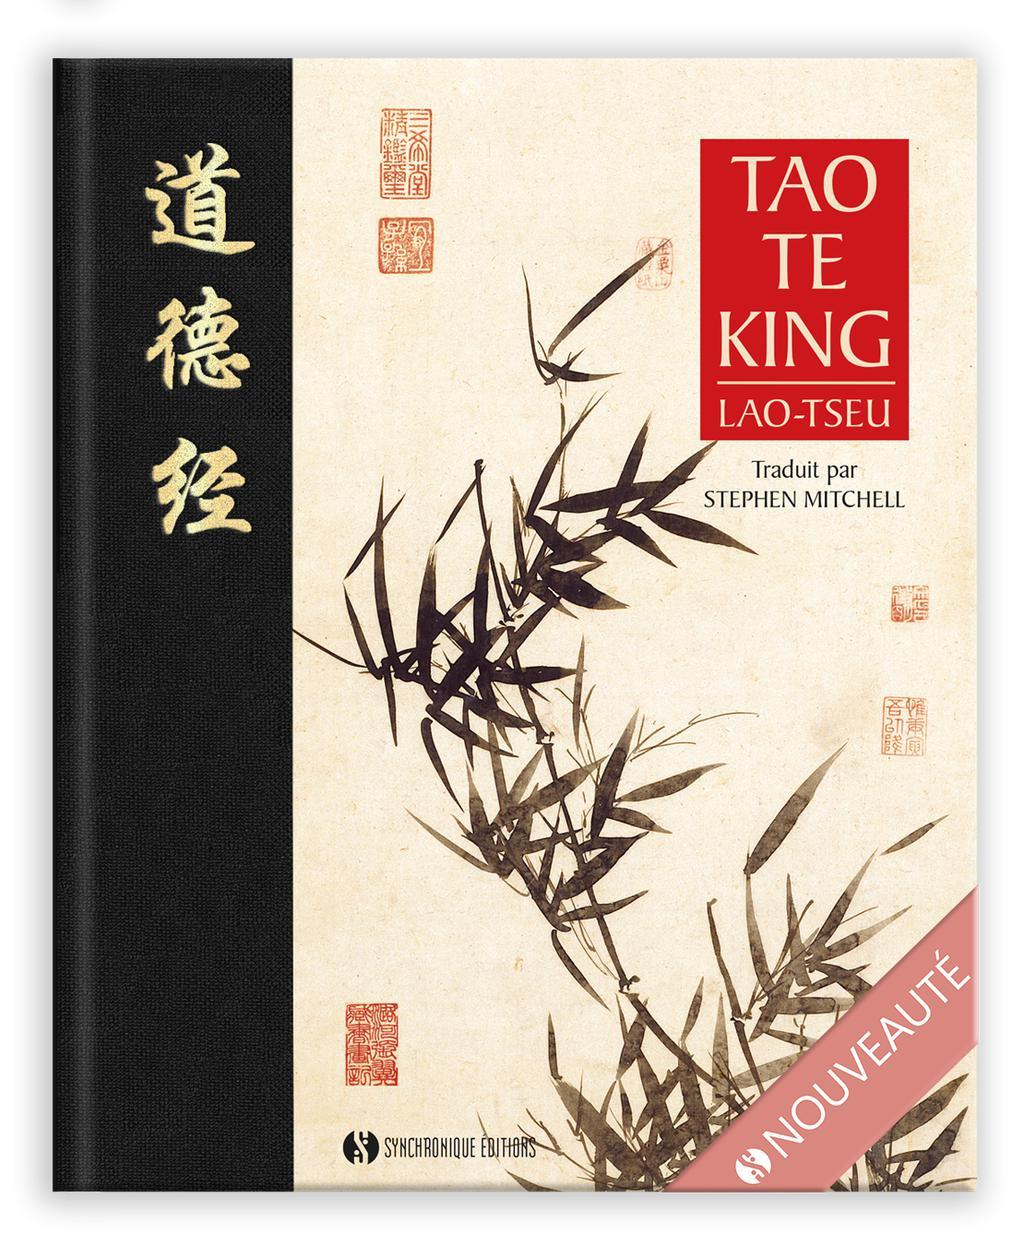 Tao Te King - Lao Tseu / Stephen Mitchell